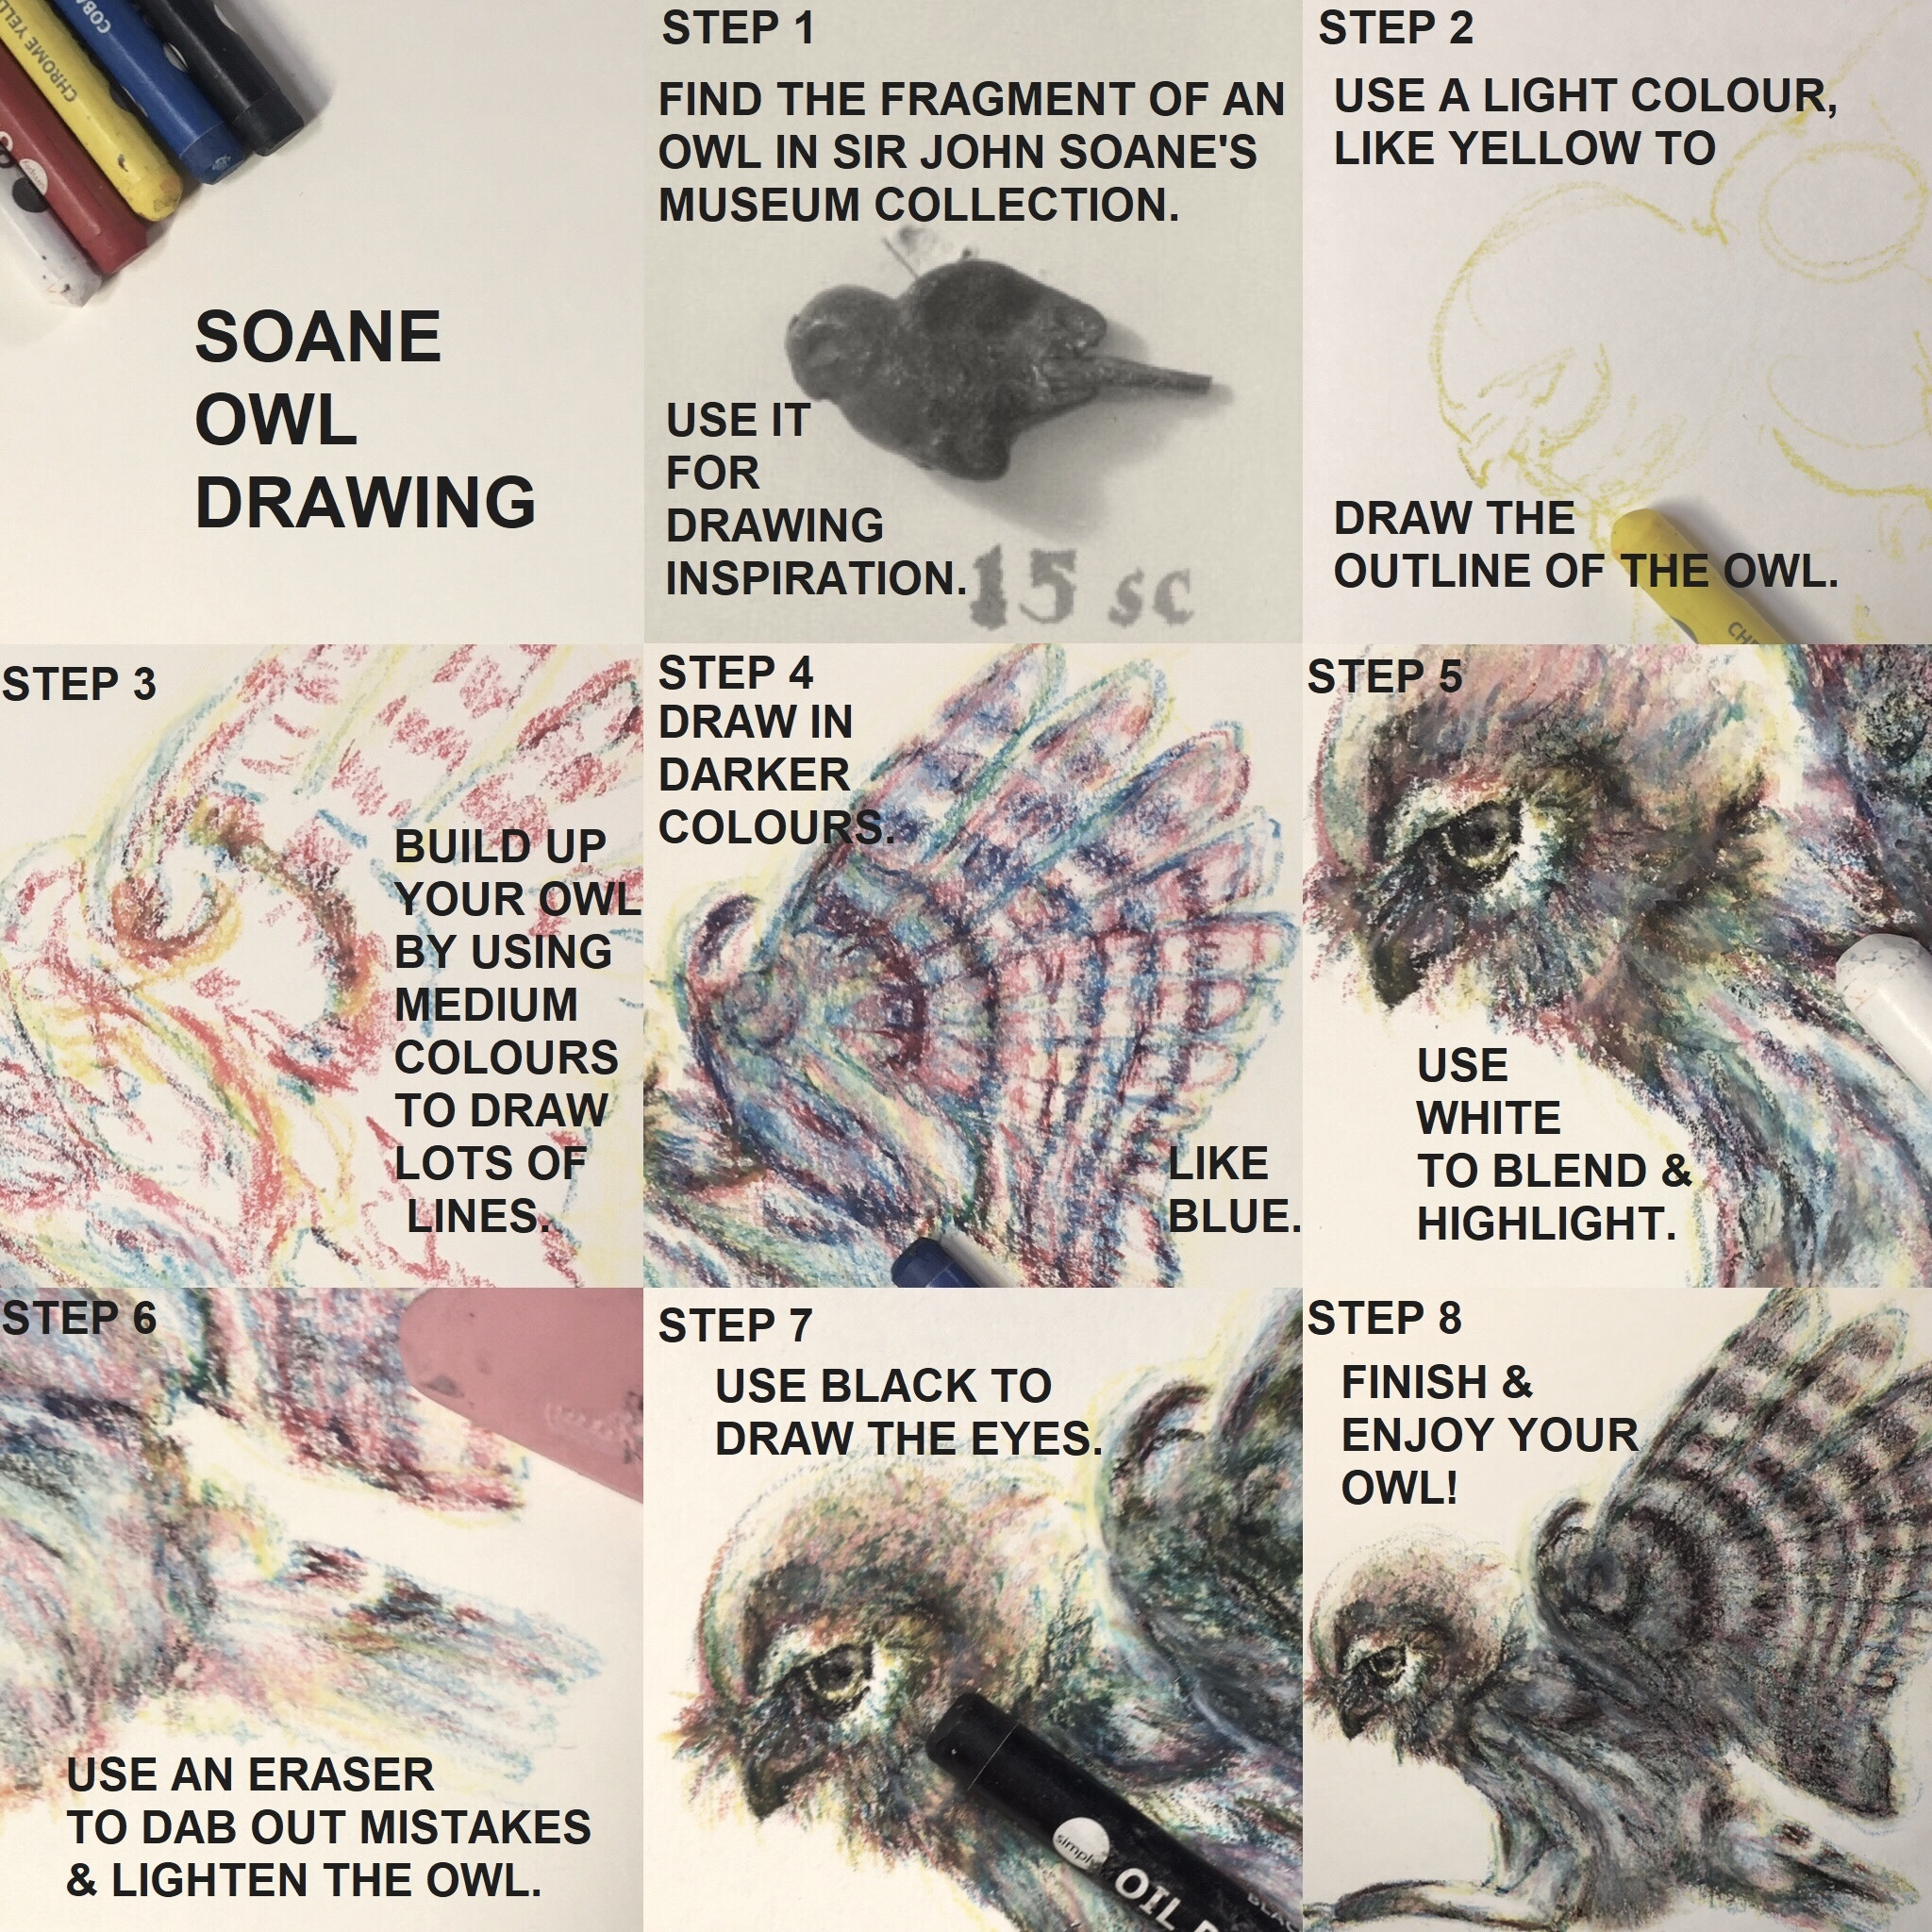 Instructions on how to draw an owl